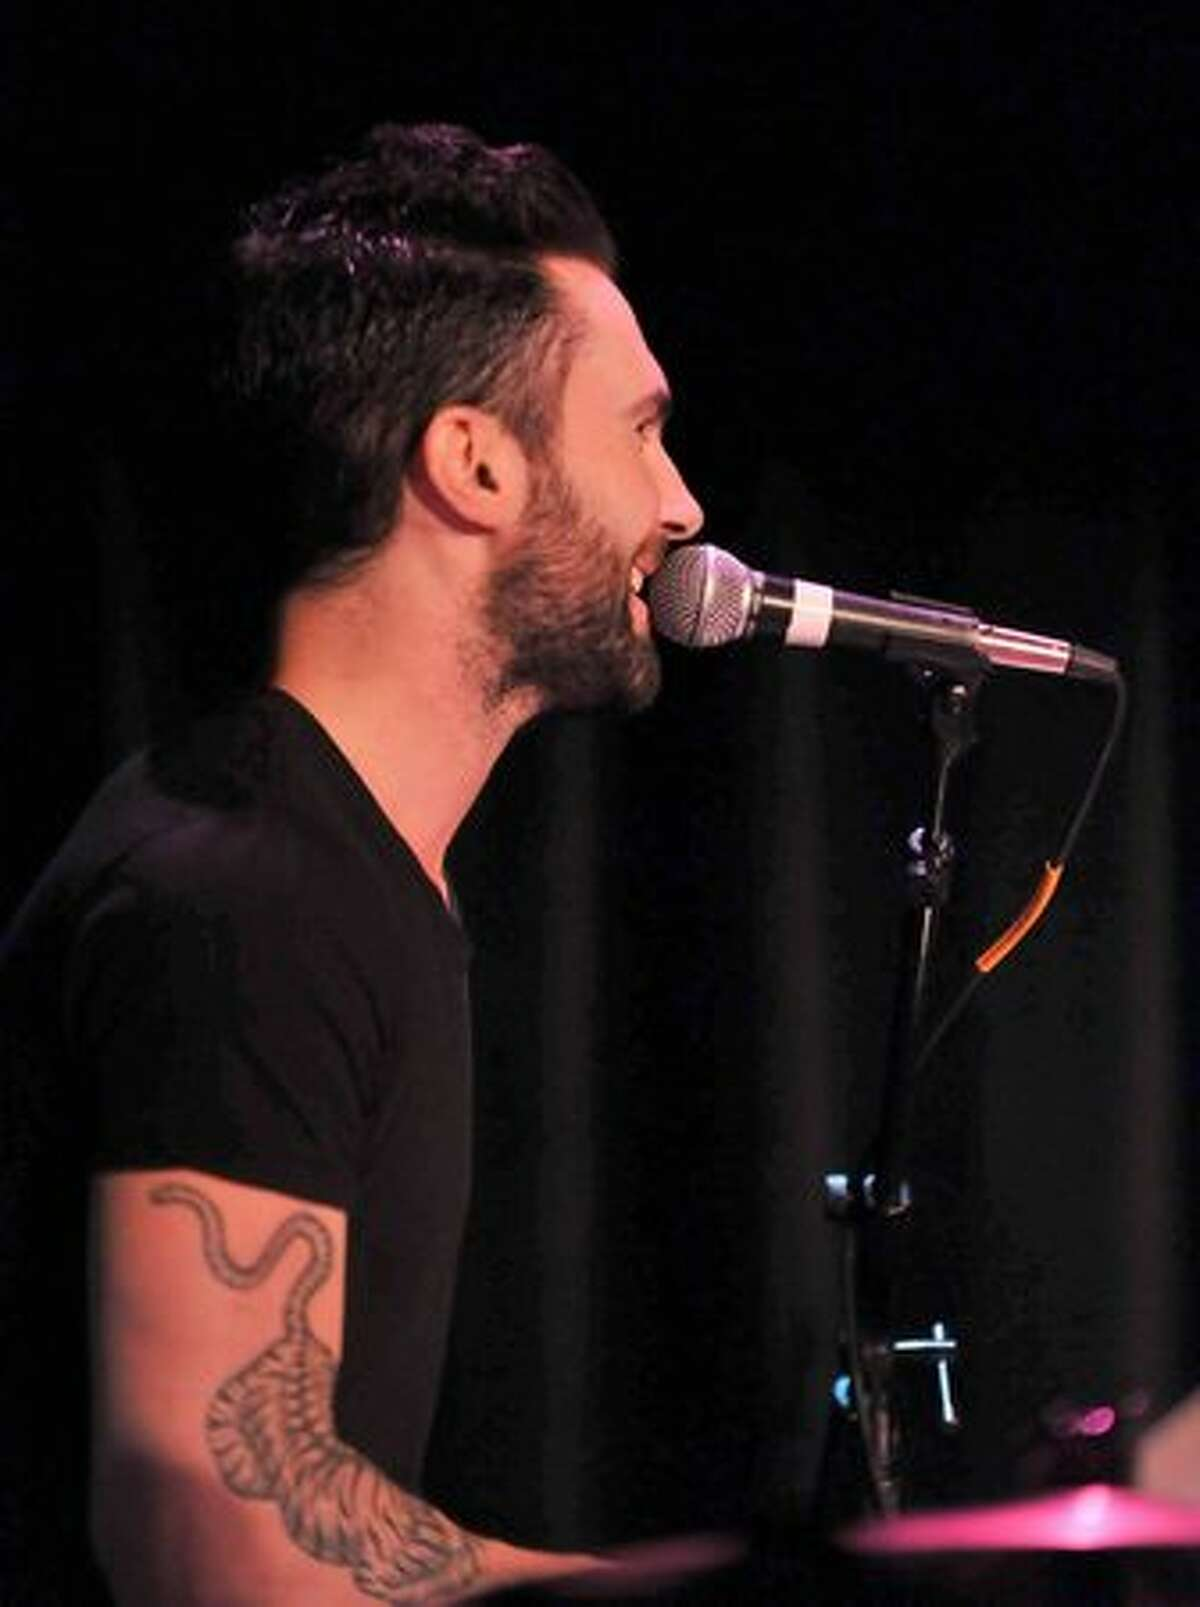 Maroon 5 singer Adam Levine performs at A Night to Benefit Haiti at The Roosevelt Hotel in Hollywood.